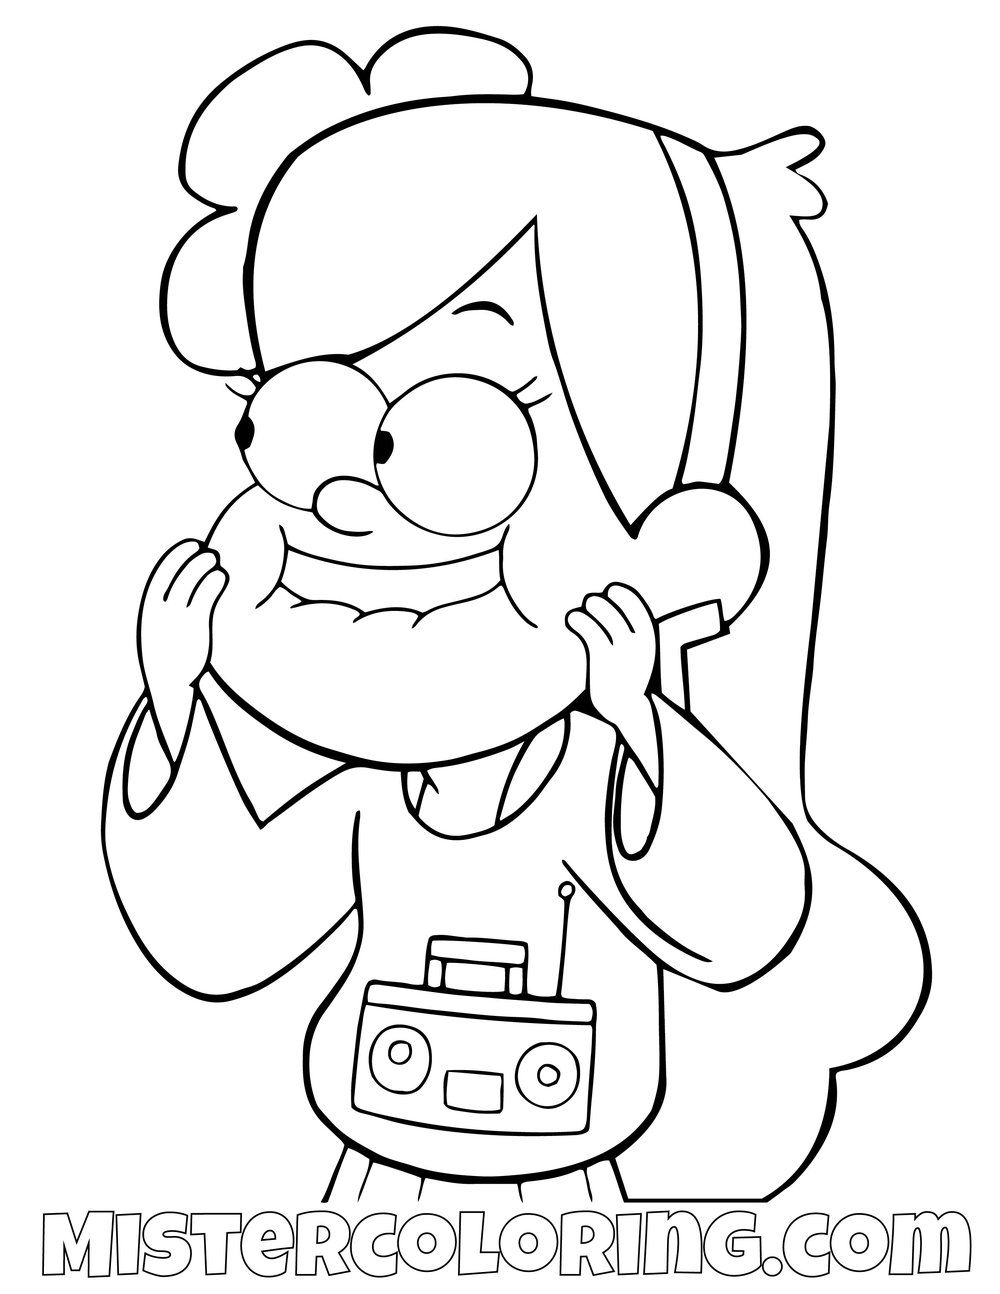 Mabel Pines Listening To Music Gravity Falls Coloring Pages For Kids Arco Iris Para Colorir Desenhos Gravity Falls